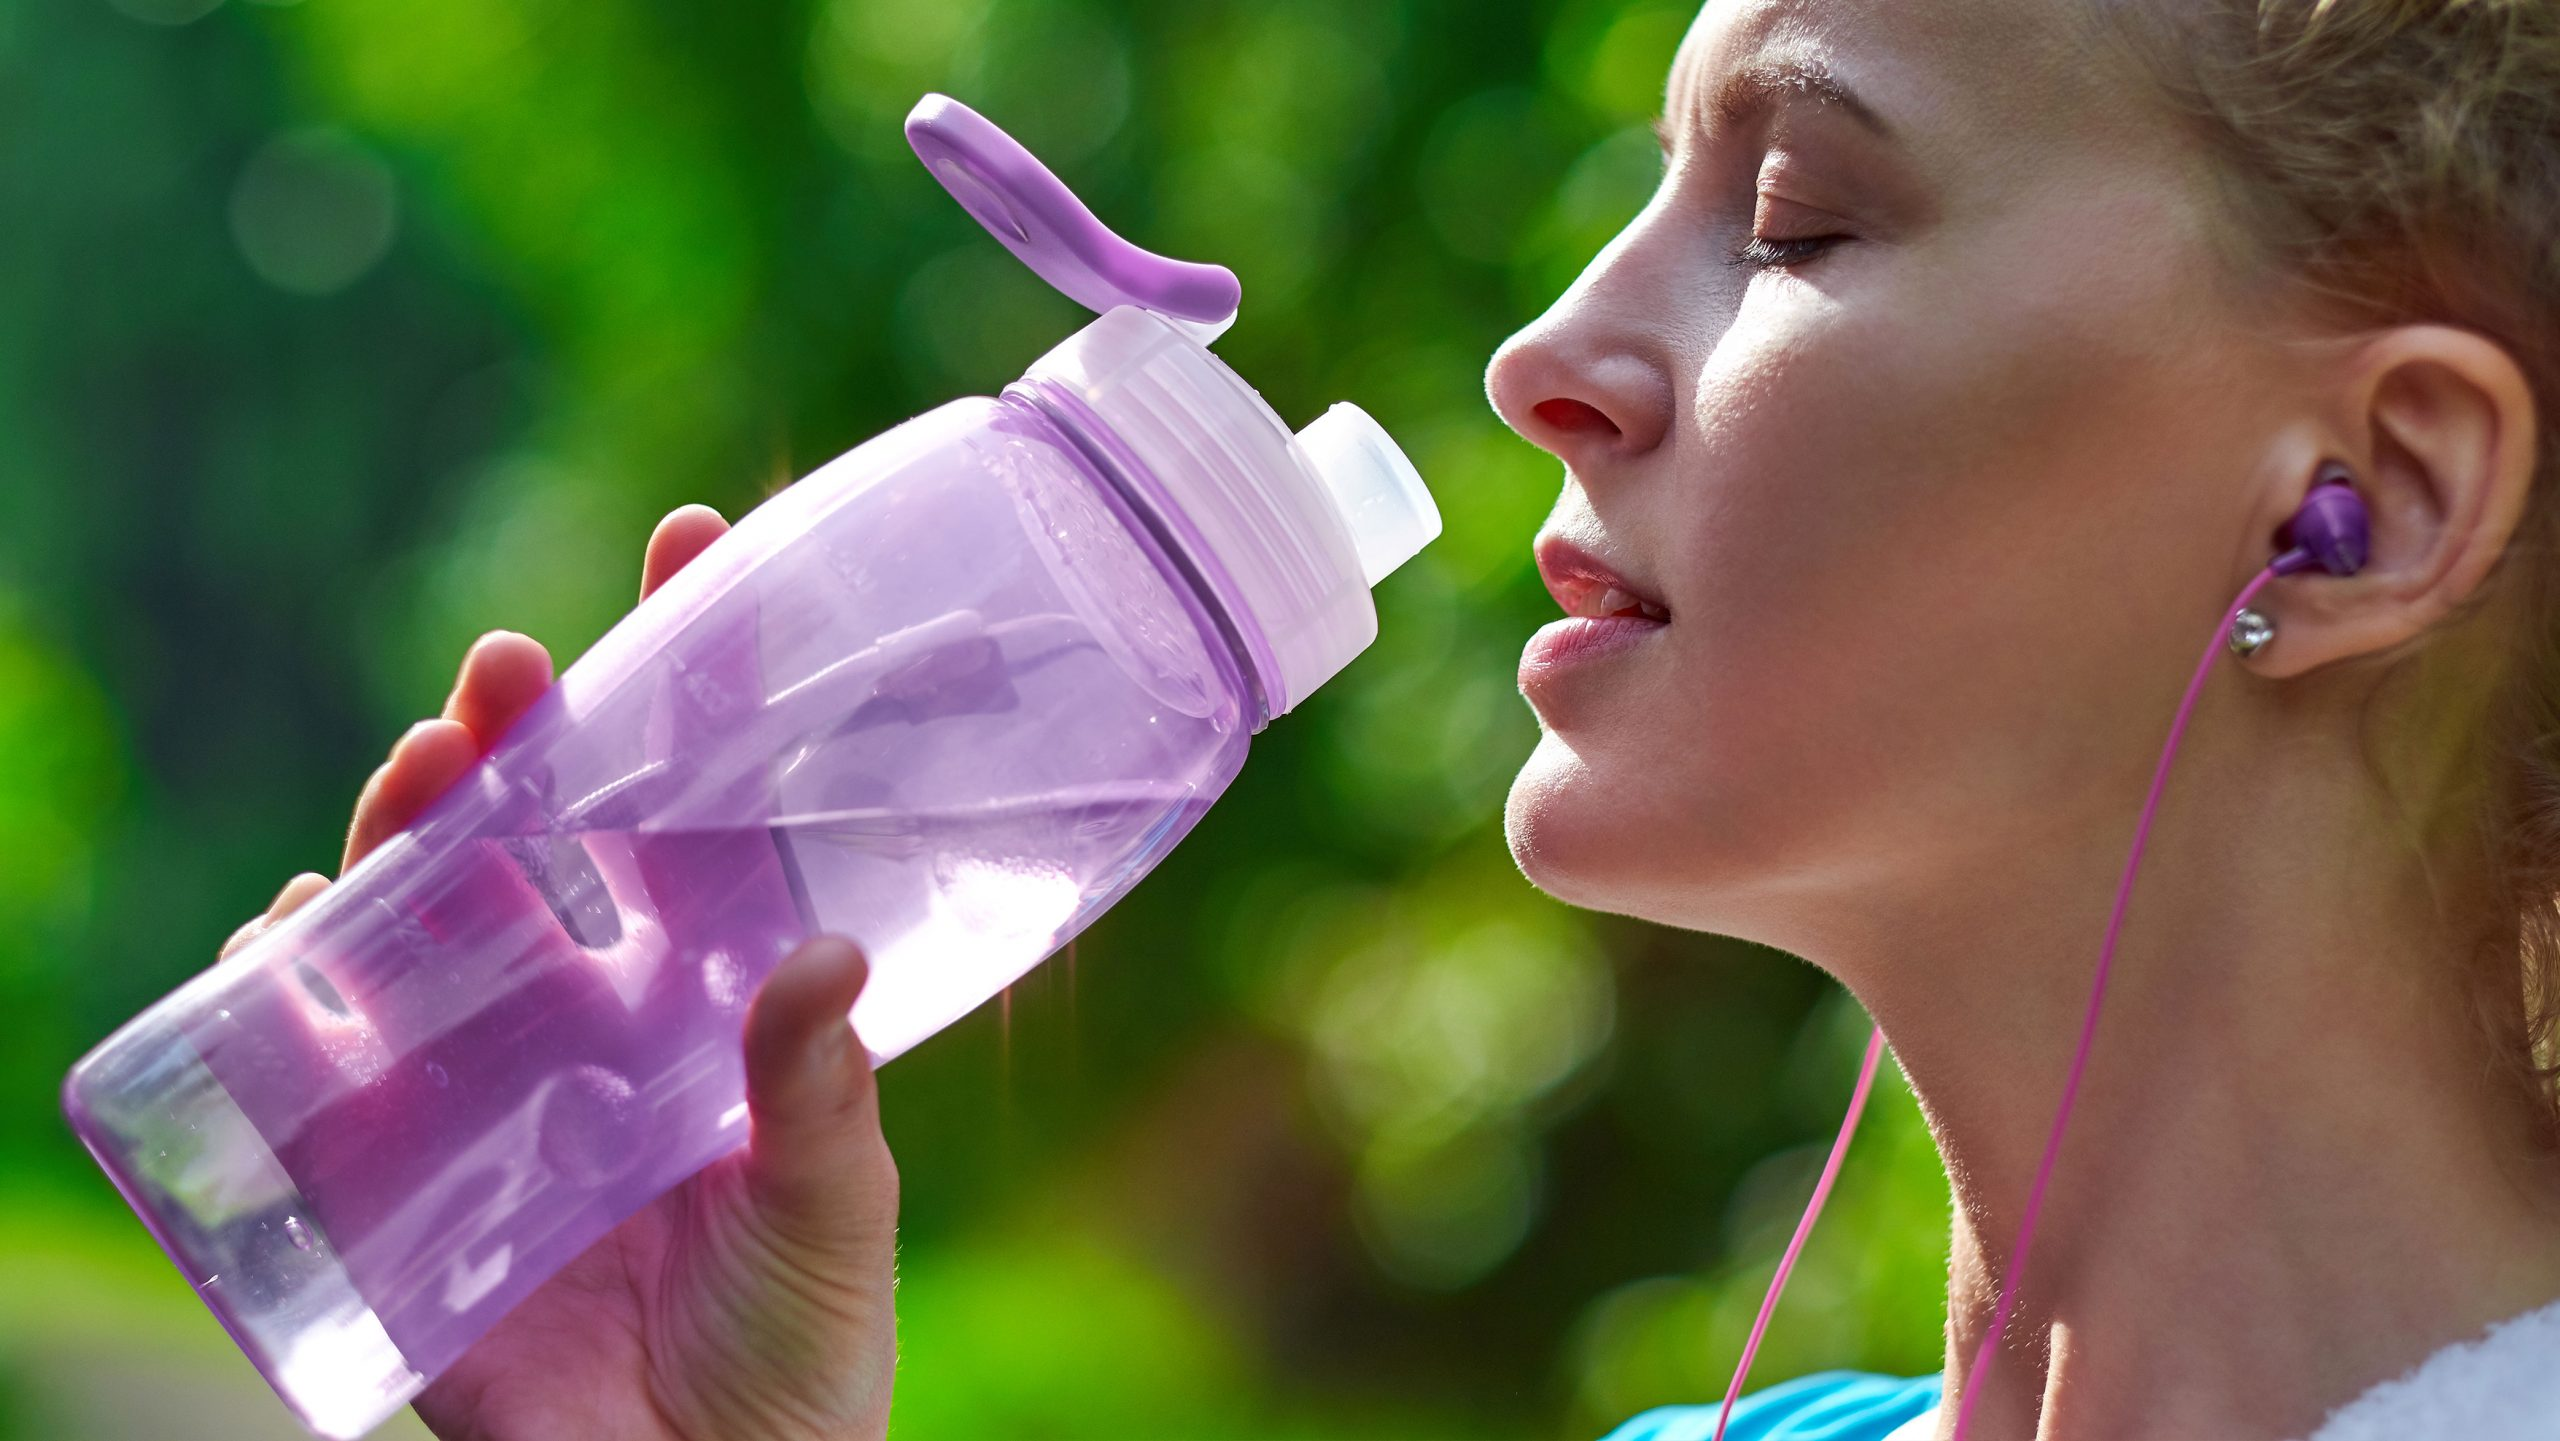 Sip, Rinse, Repeat – Caring for Your Reusable Drinkware